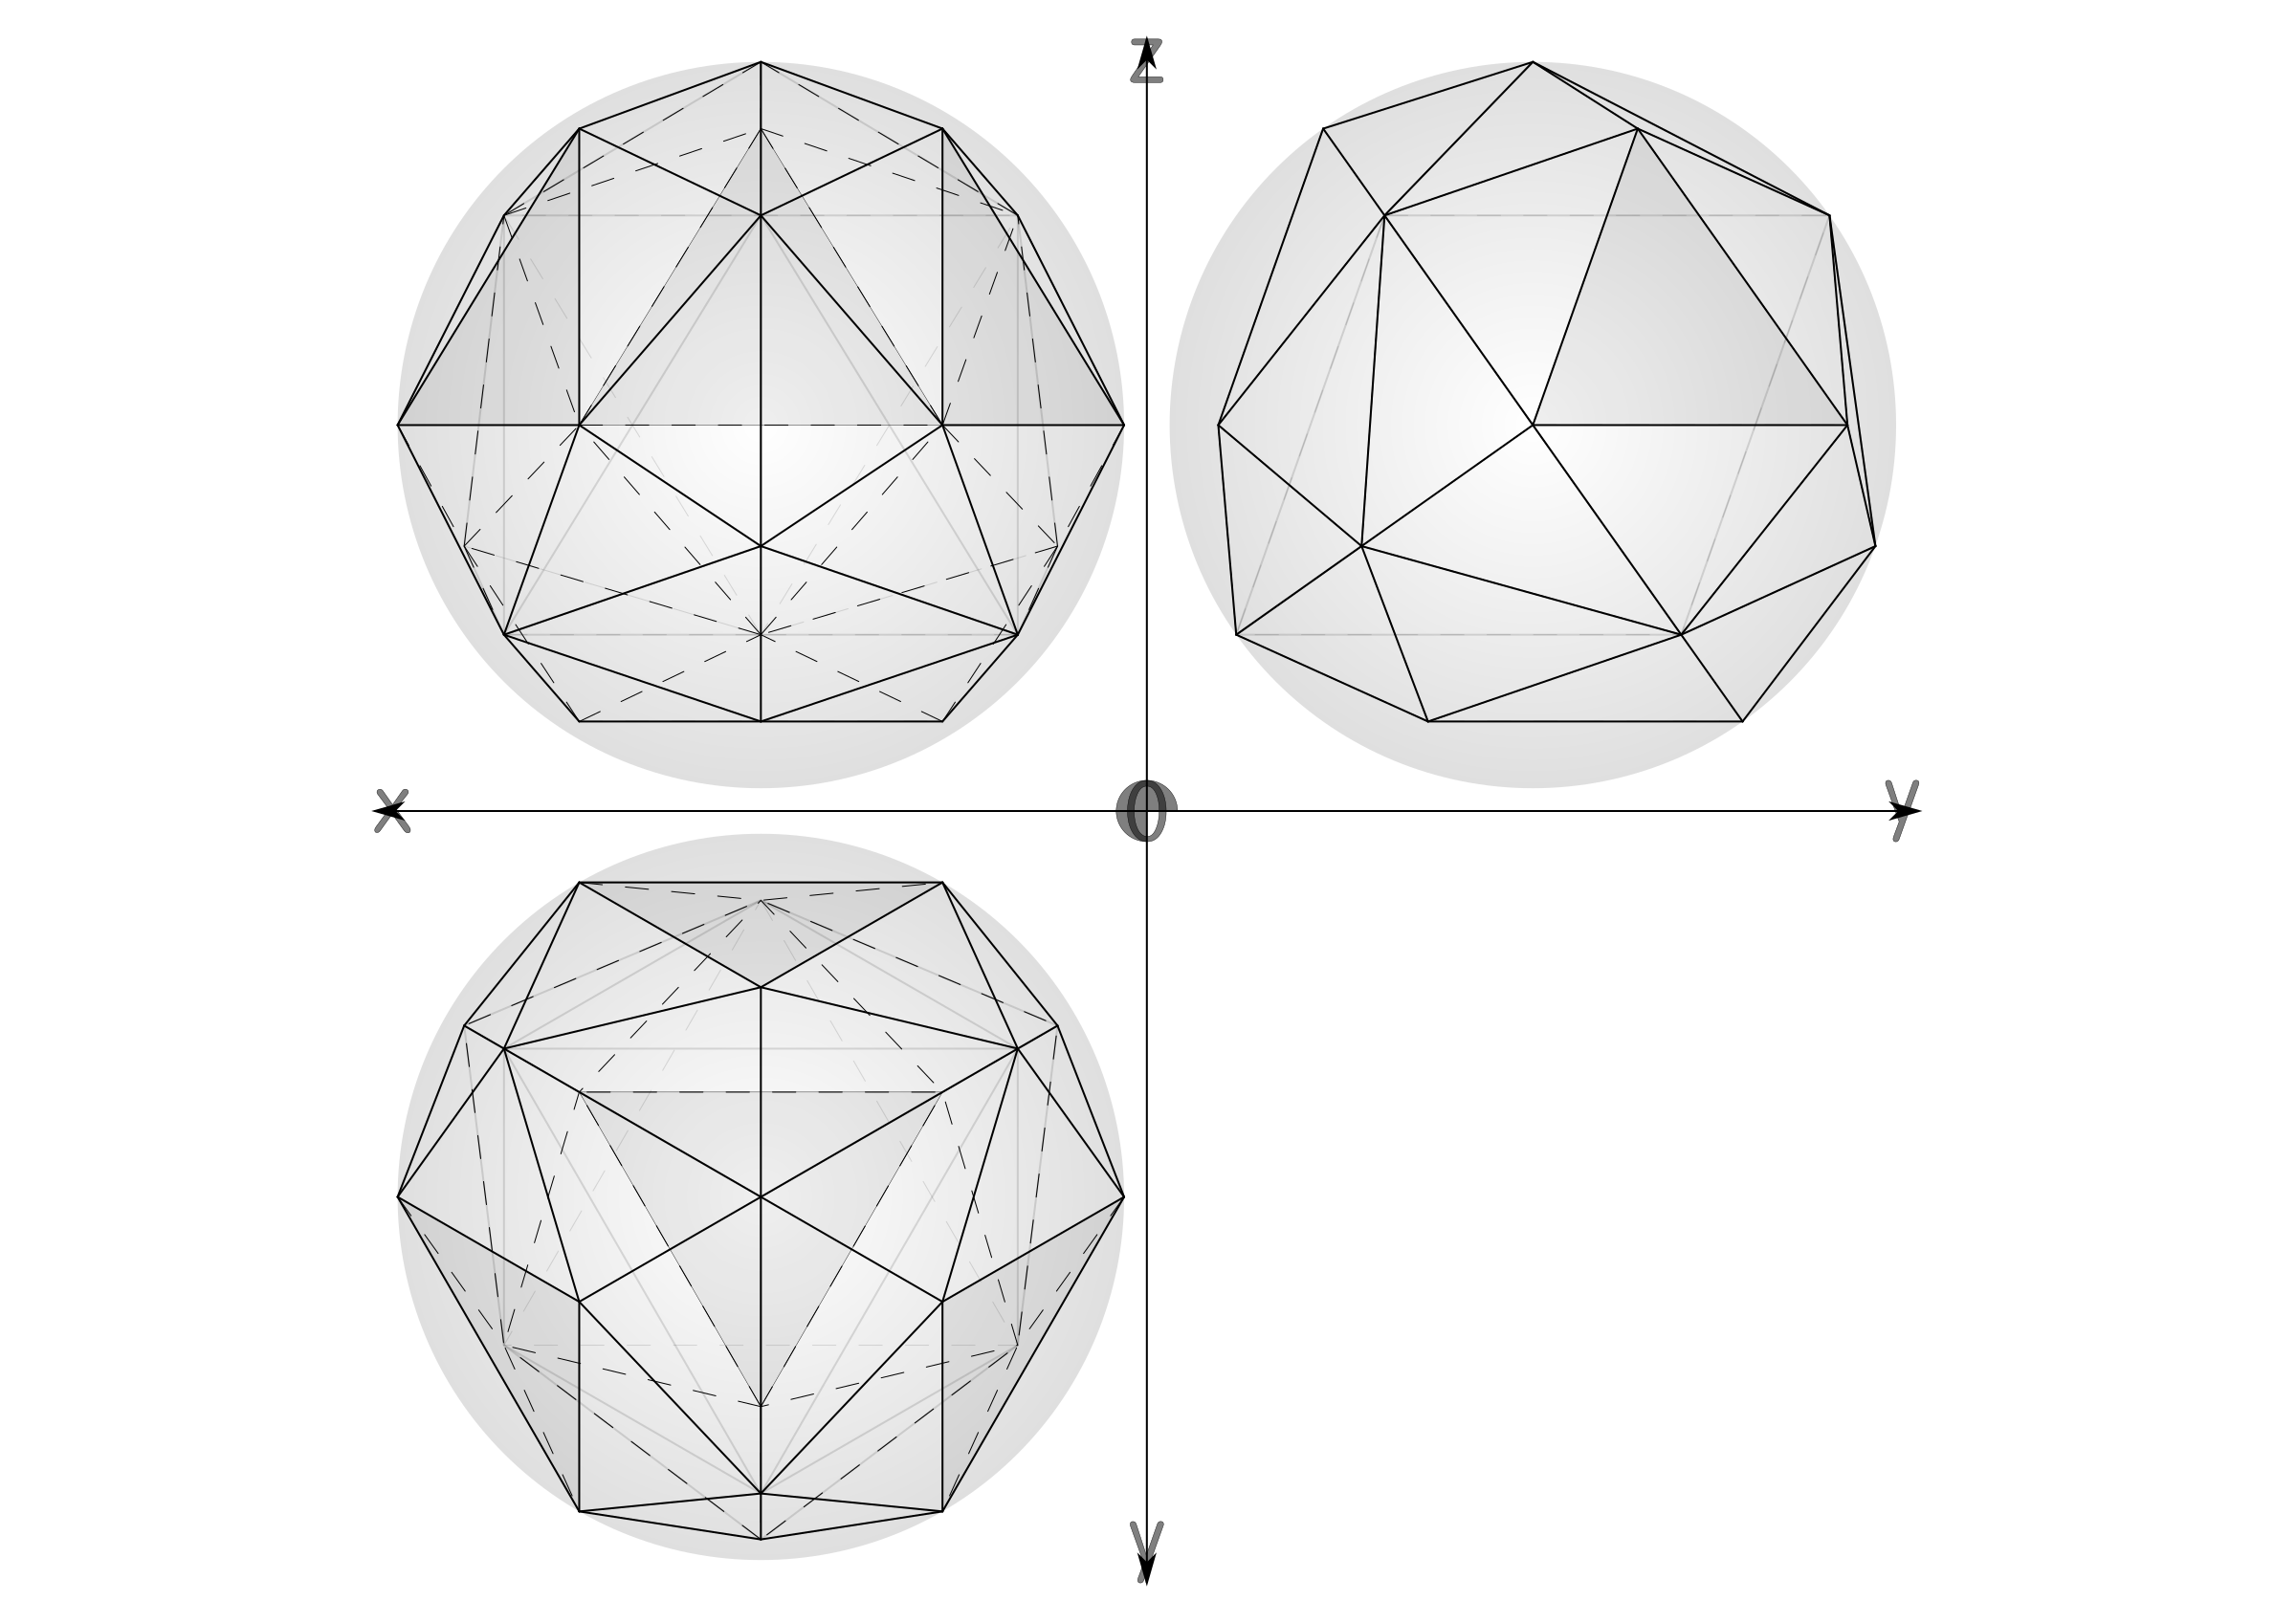 27 construction geodesic spheres recursive from tetrahedron by ric5sch